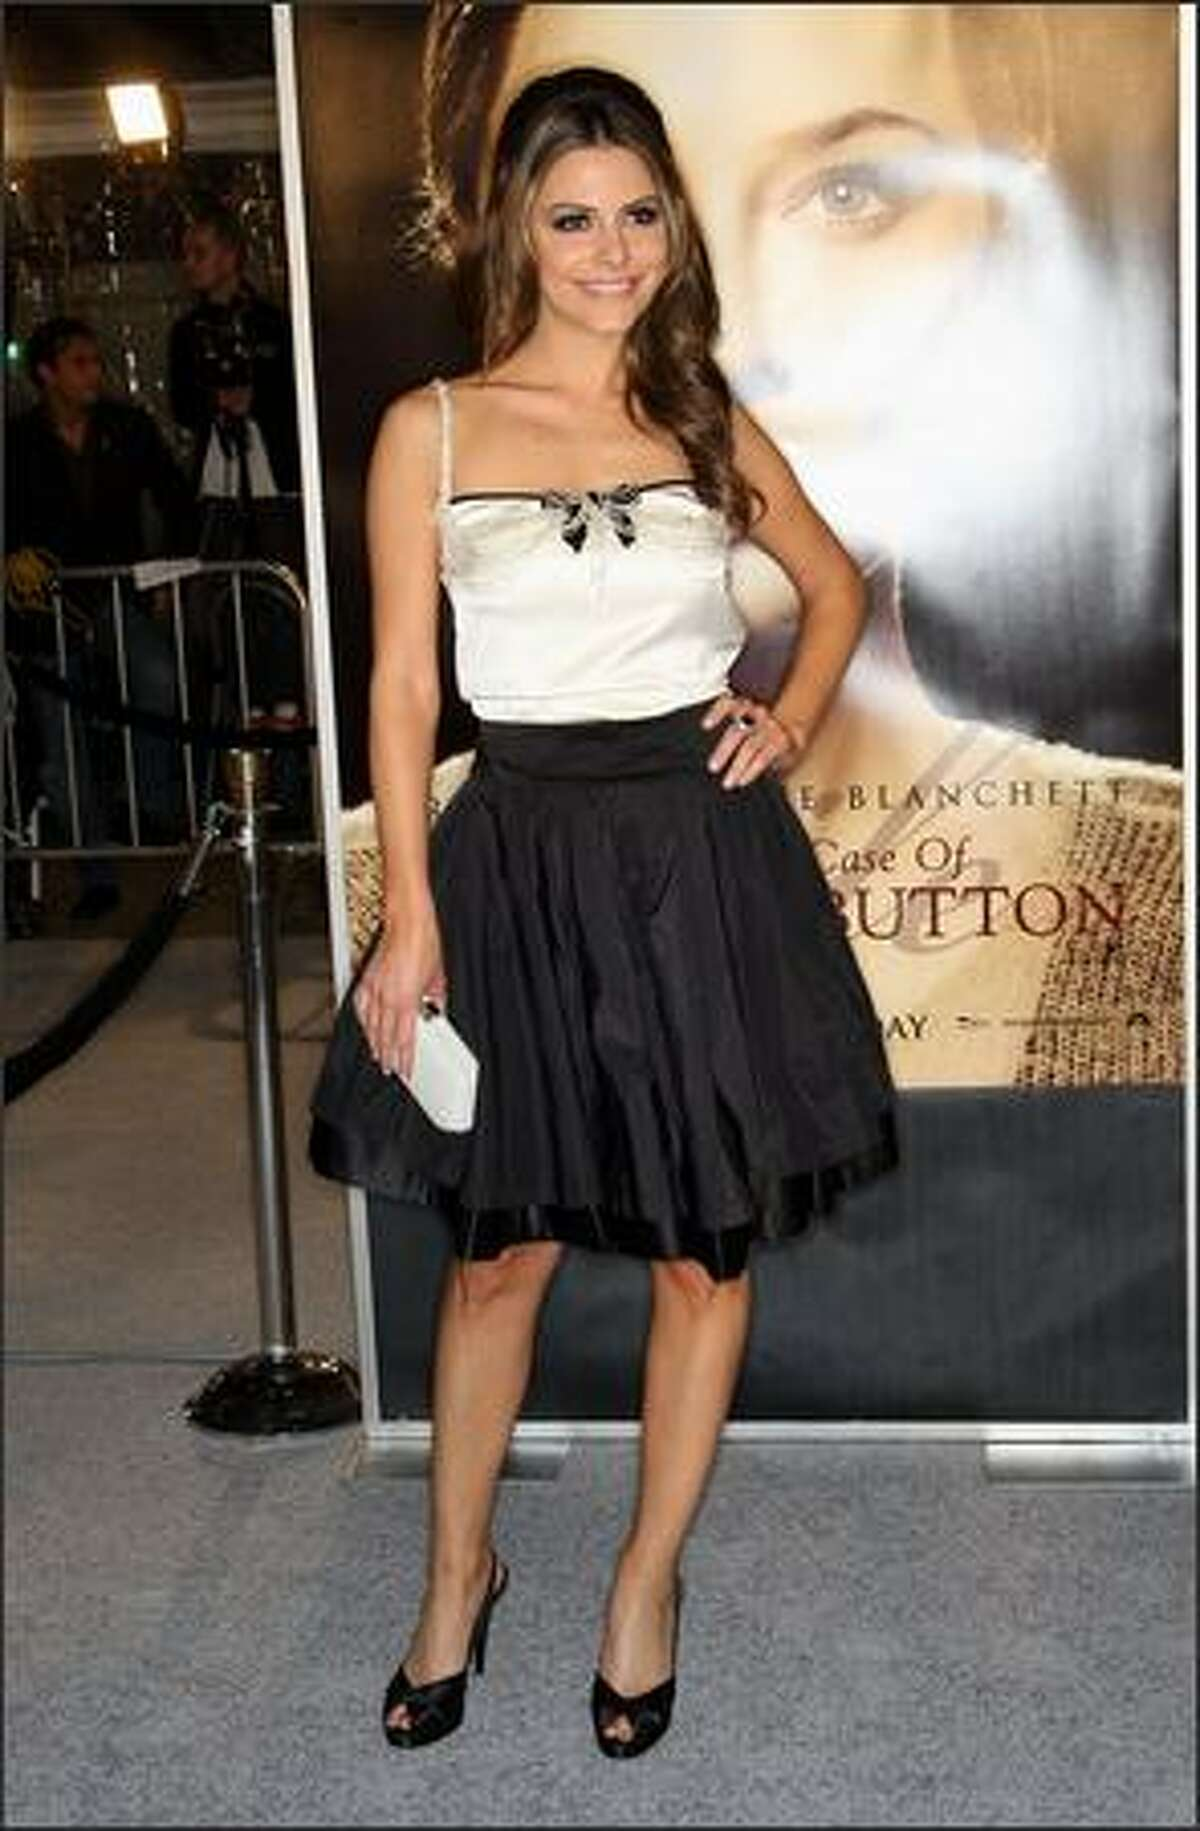 """TV personality Maria Menounos arrives at the premiere of Paramount's """"The Curious Case Of Benjamin Button"""" held at Mann's Village Theatre on Monday in Westwood, Calif."""